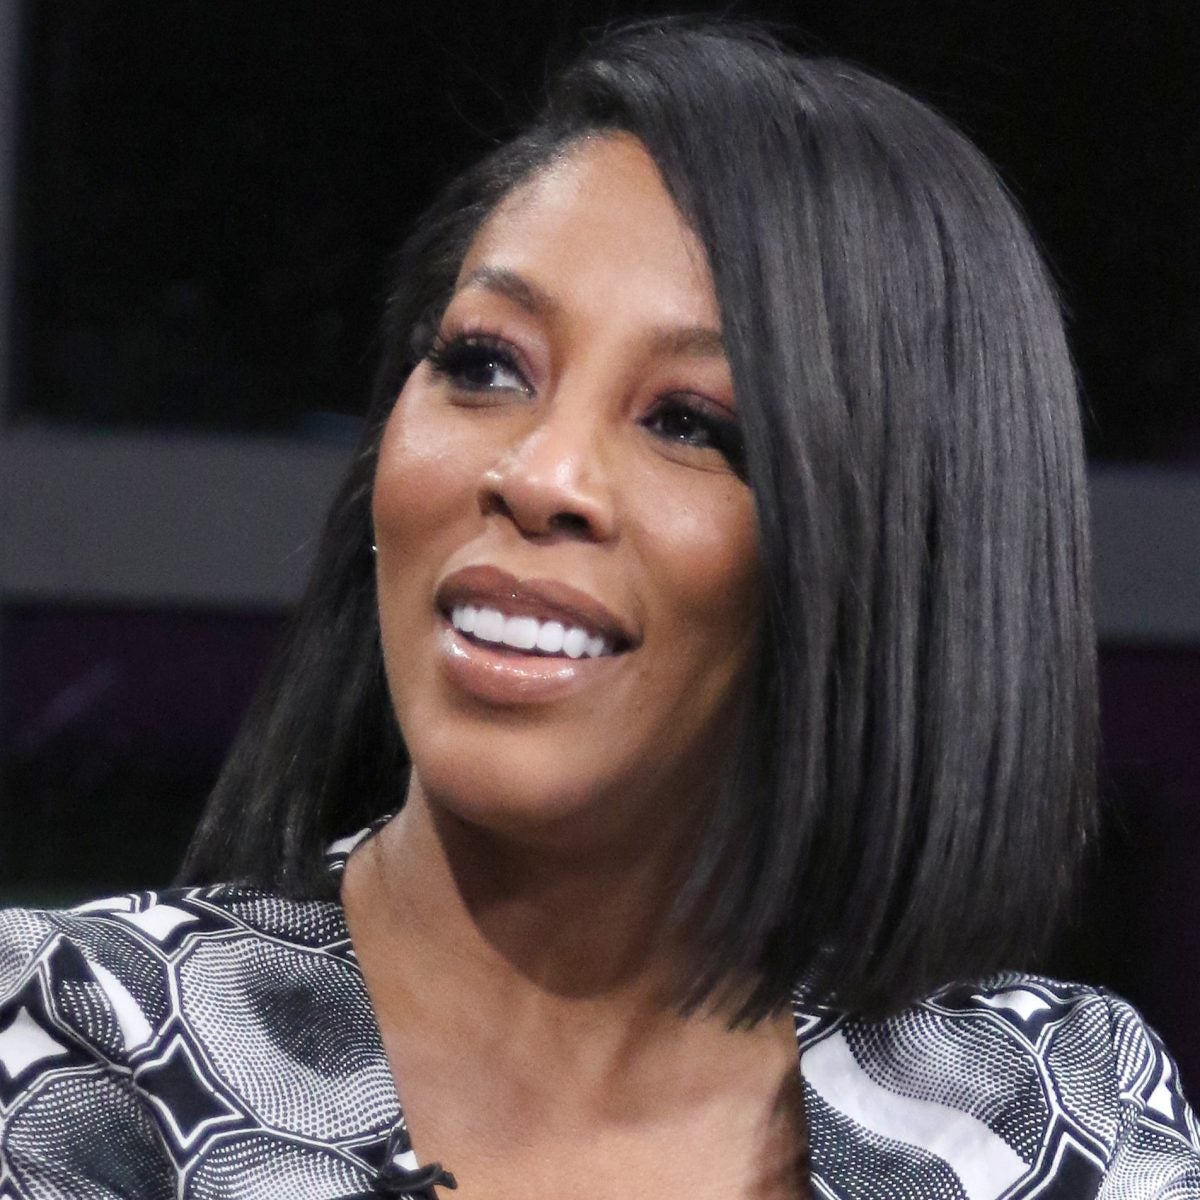 Fans Are Wondering If K. Michelle Had Plastic Surgery Following Recent Photos